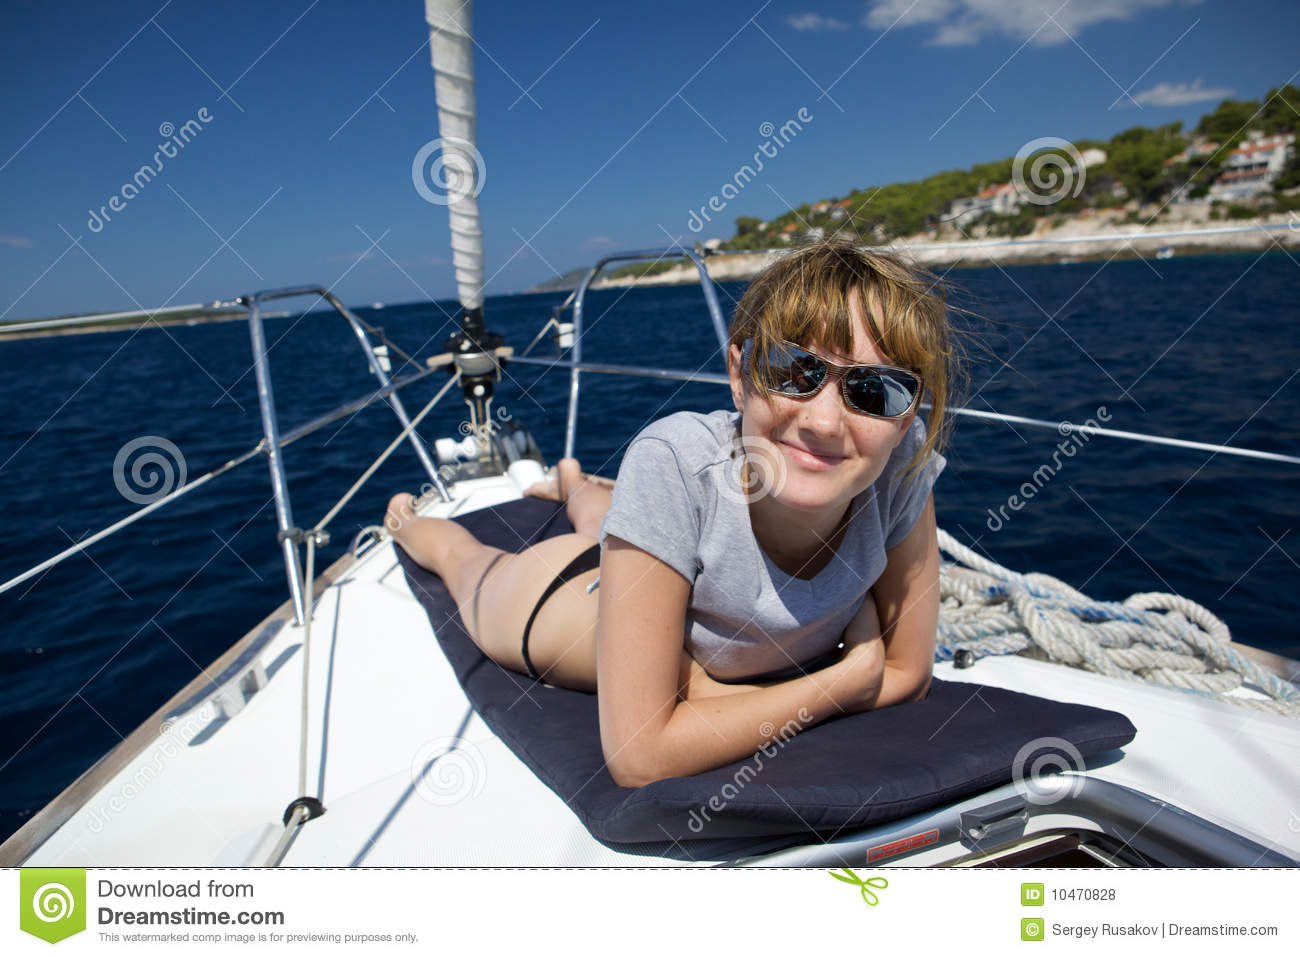 Royalty Free Stock Photo Teenage Girls Spending Leisure Time Bedroom Happy Applying Nail Polish Friend Using Mobile Phone Image33616065 together with Royalty Free Stock Photos Sunbathing Boat Image10470828 additionally Small Bedroom Designs For Men besides Coloured Dolcett in addition Immagini Stock Libere Da Diritti Donna Che Spoglia Per L Uomo Image29657849. on women bedroom design